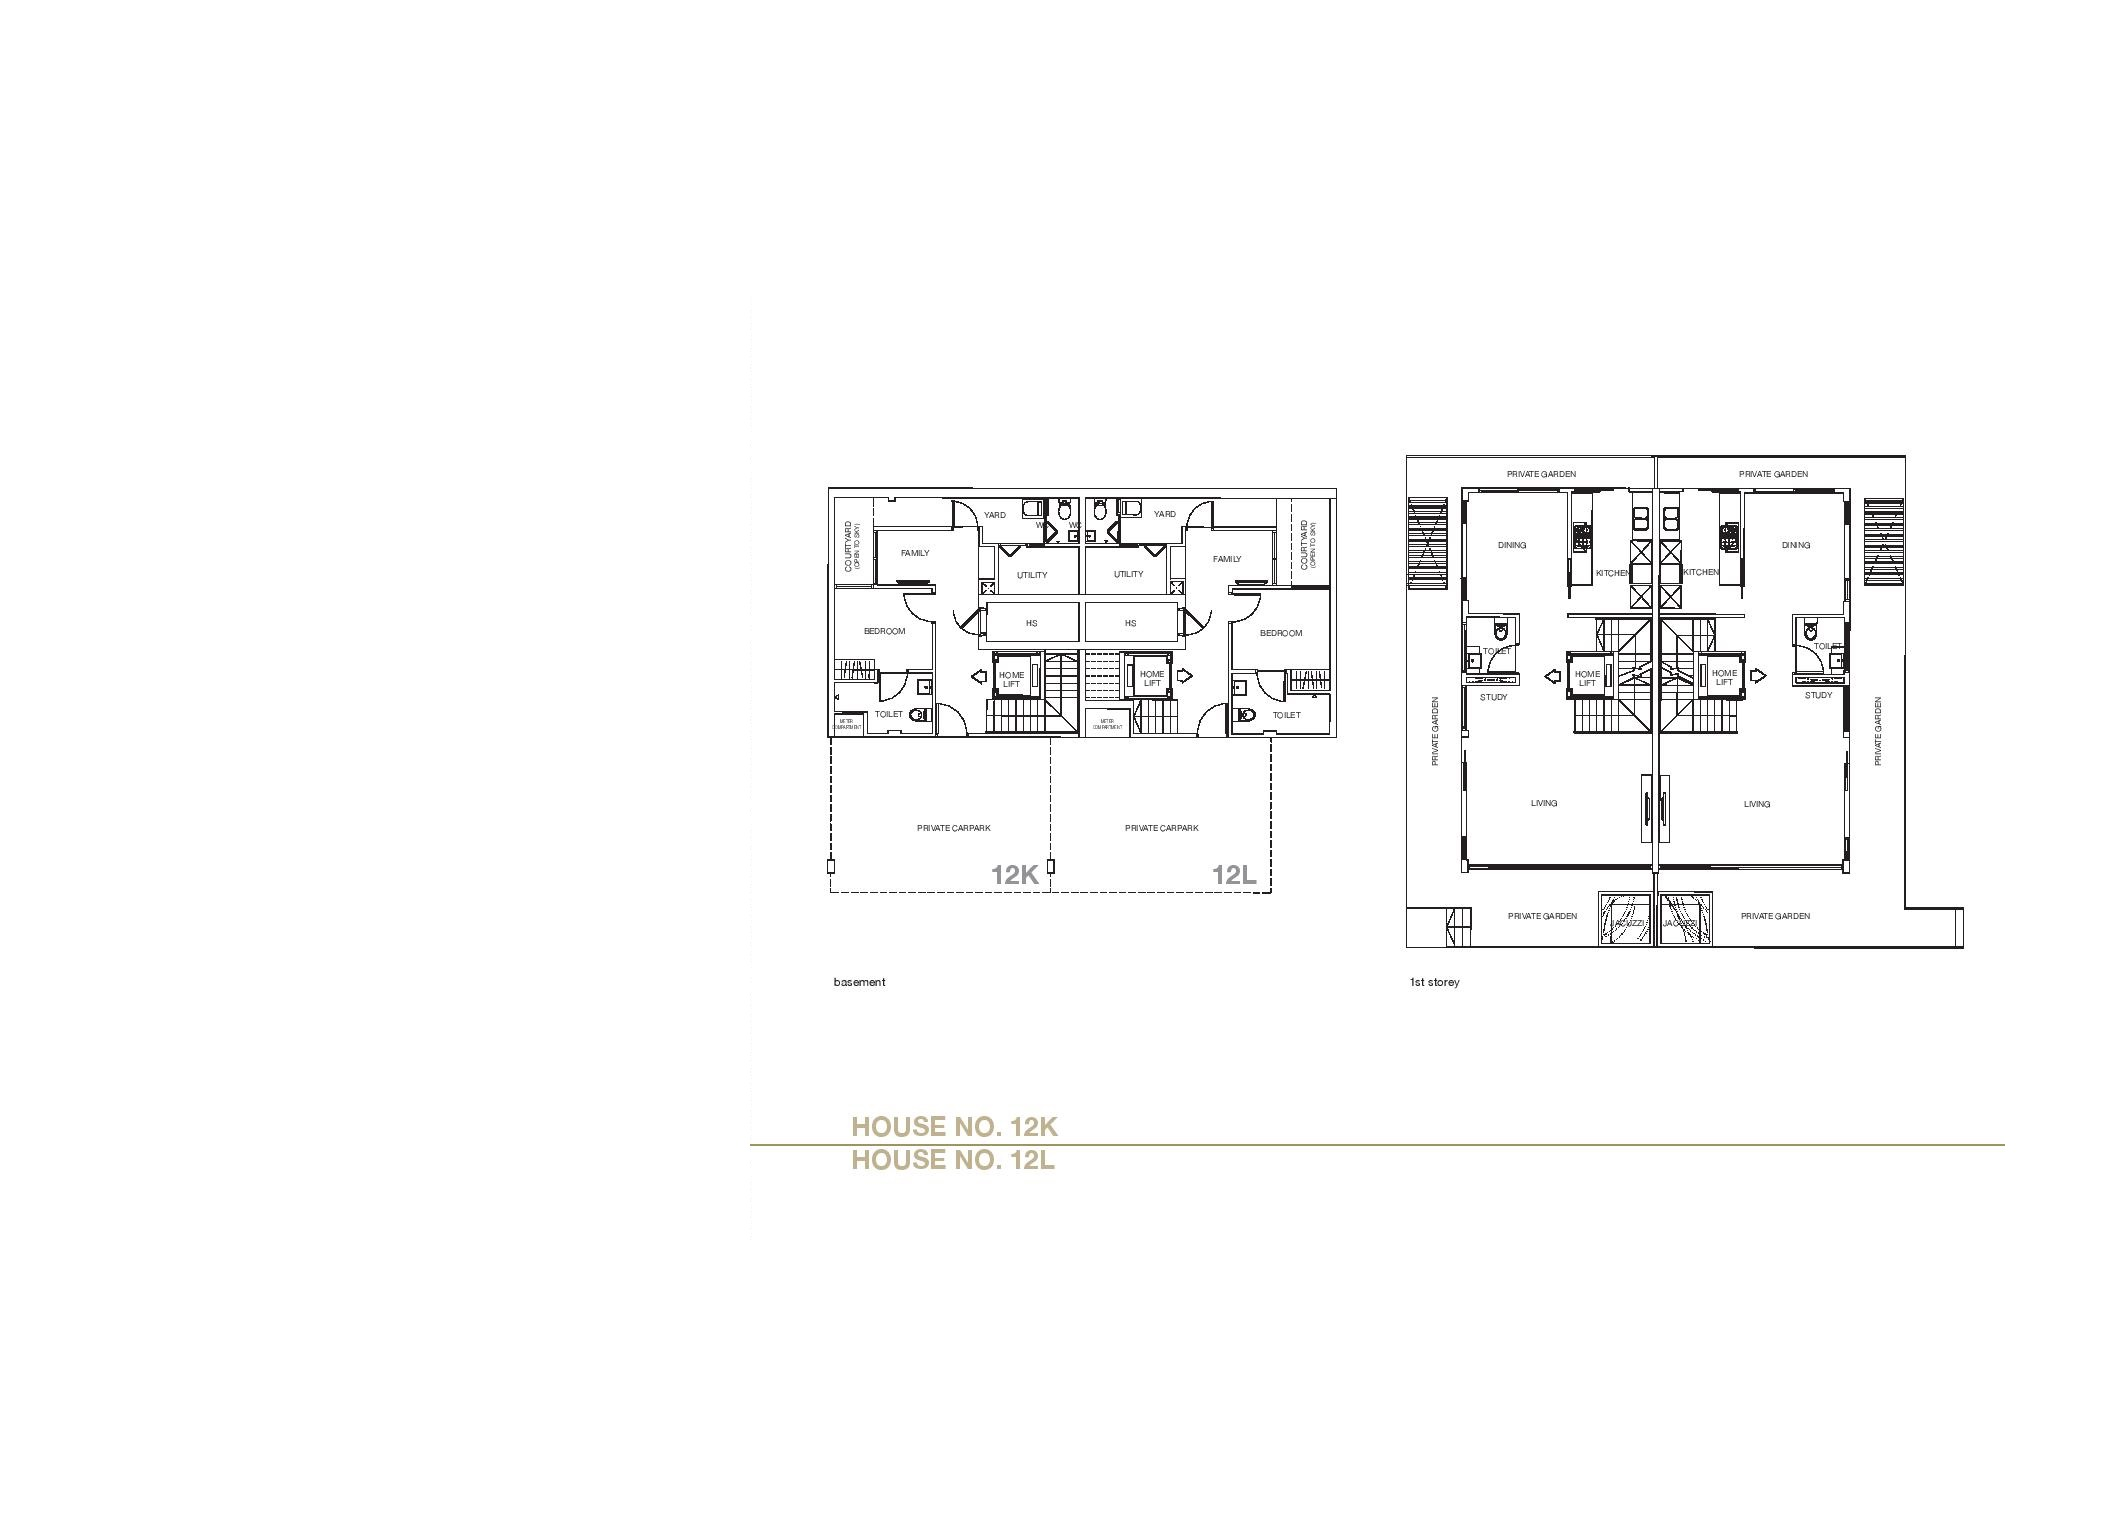 Chancery Hill Villas House 12K/12L Basement & 1st LevelFloor Plans